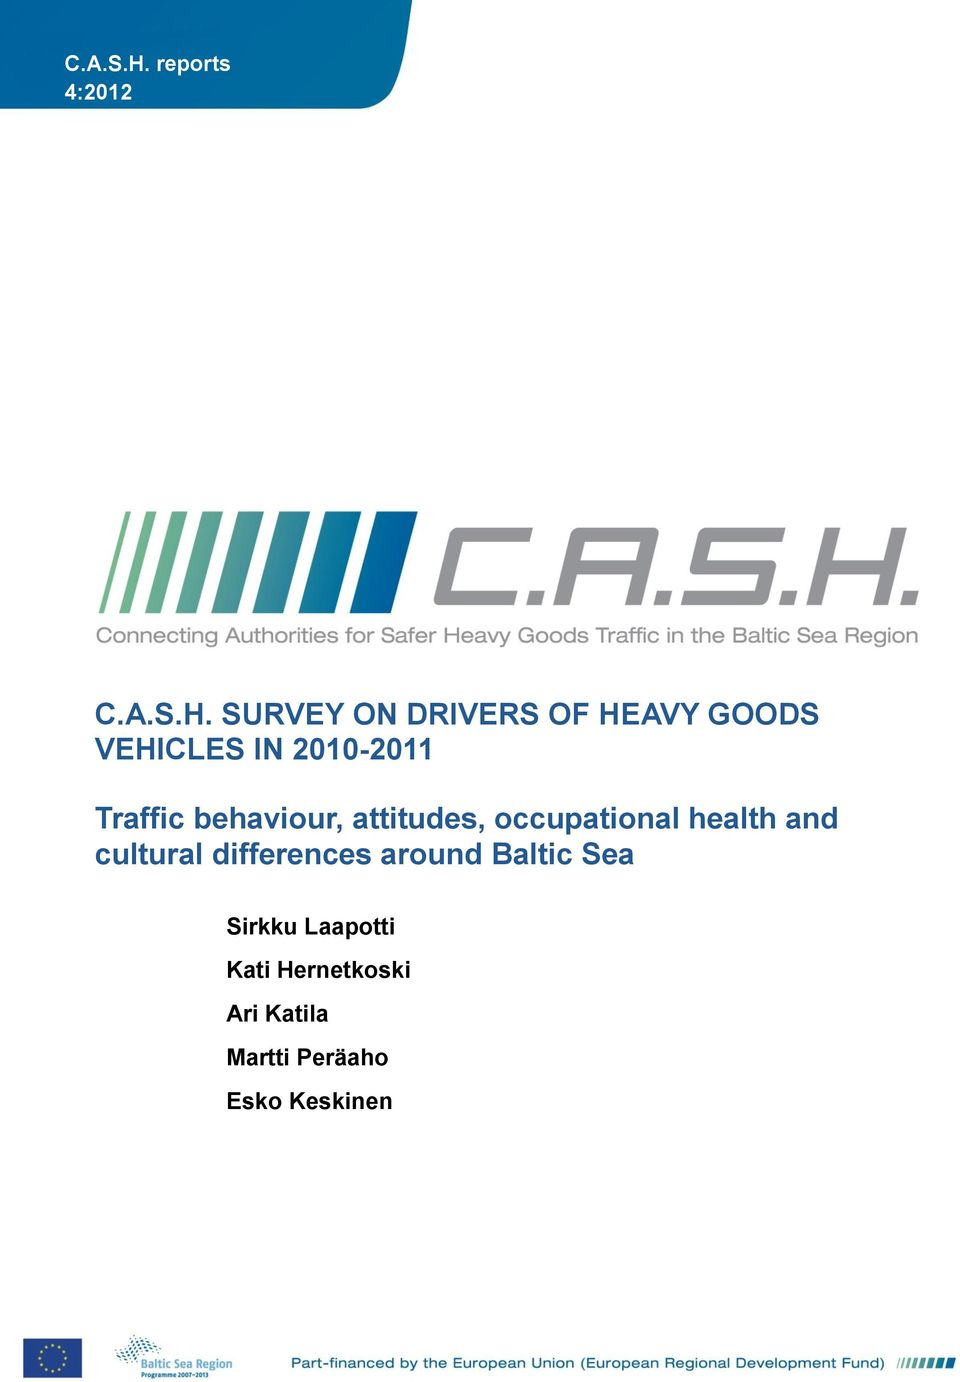 2010-2011 Traffic behaviour, attitudes, occupational health and